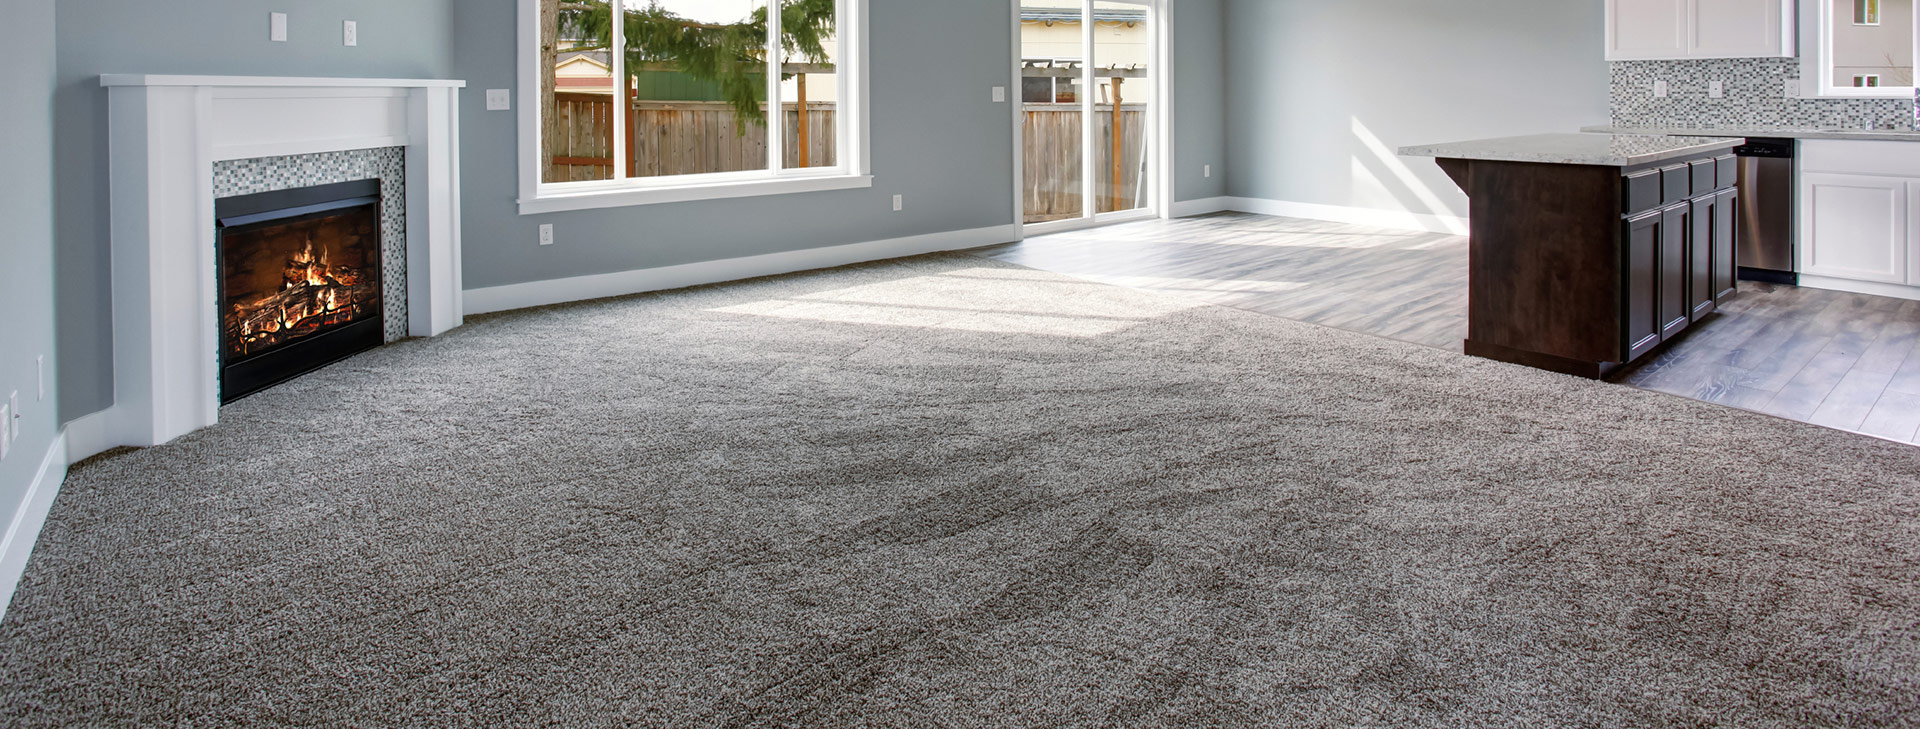 best carpet carpet cleaning FWDBHSW